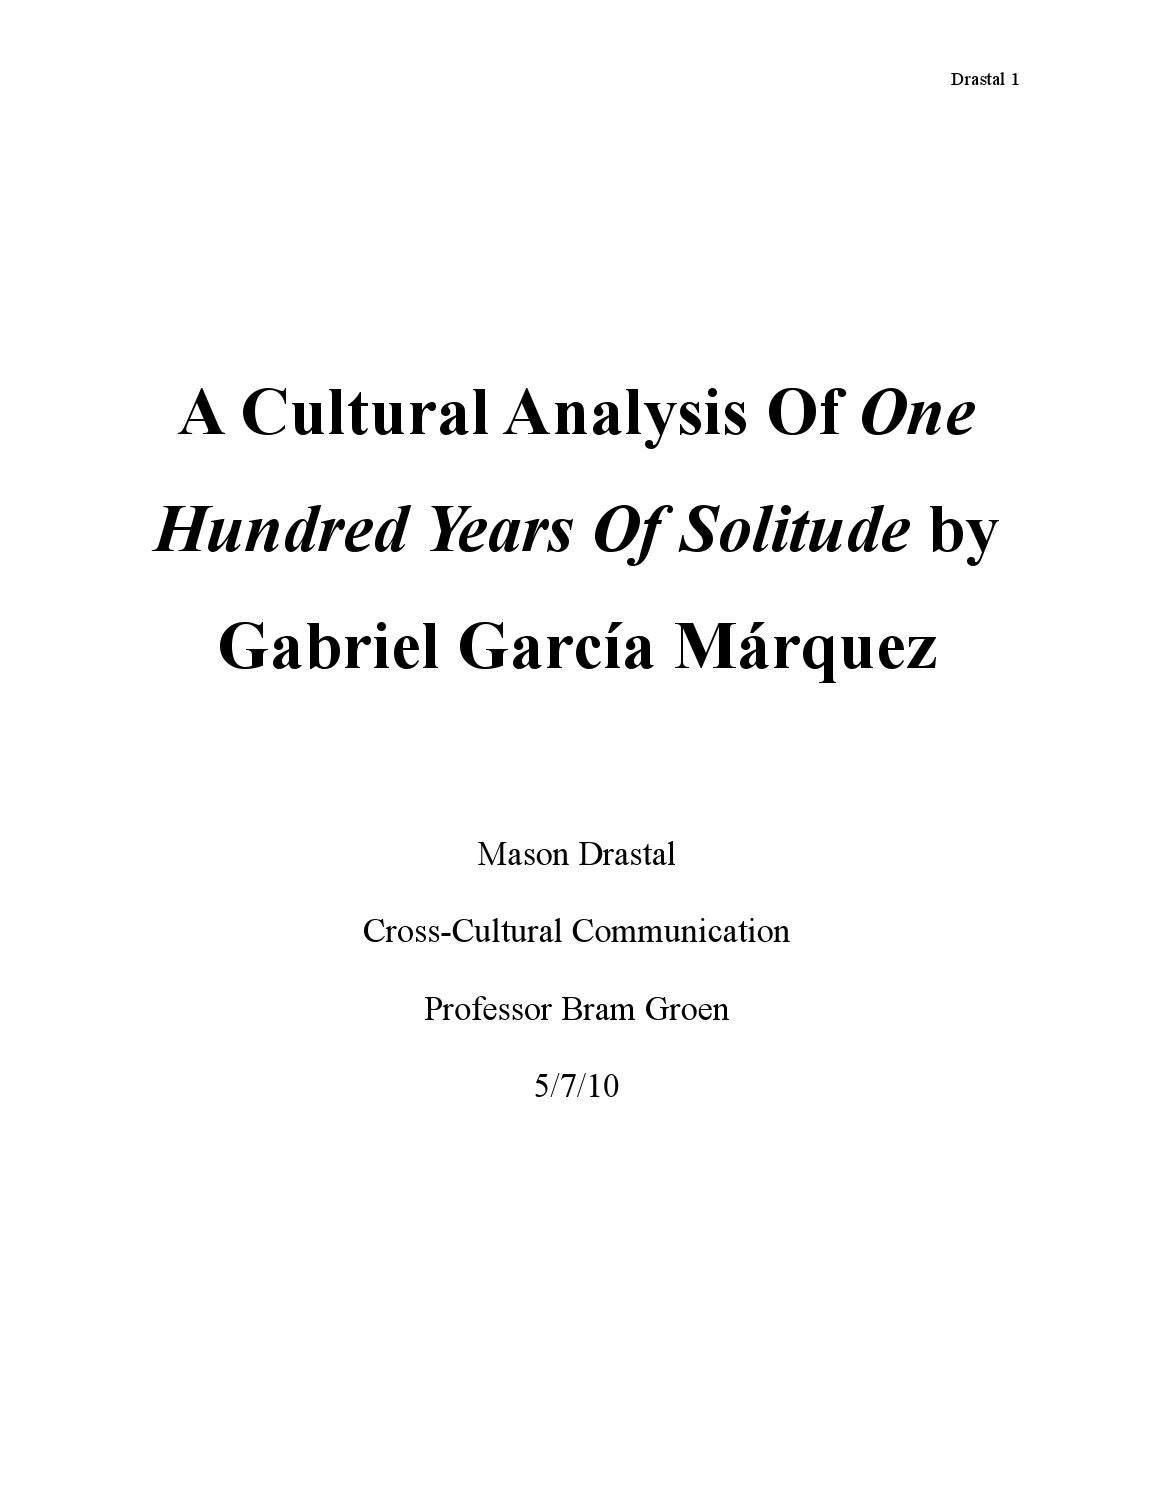 a cultural analysis of one hundred years of solitude by gabriel  a cultural analysis of one hundred years of solitude by gabriel garcia marquez by mason drastal issuu